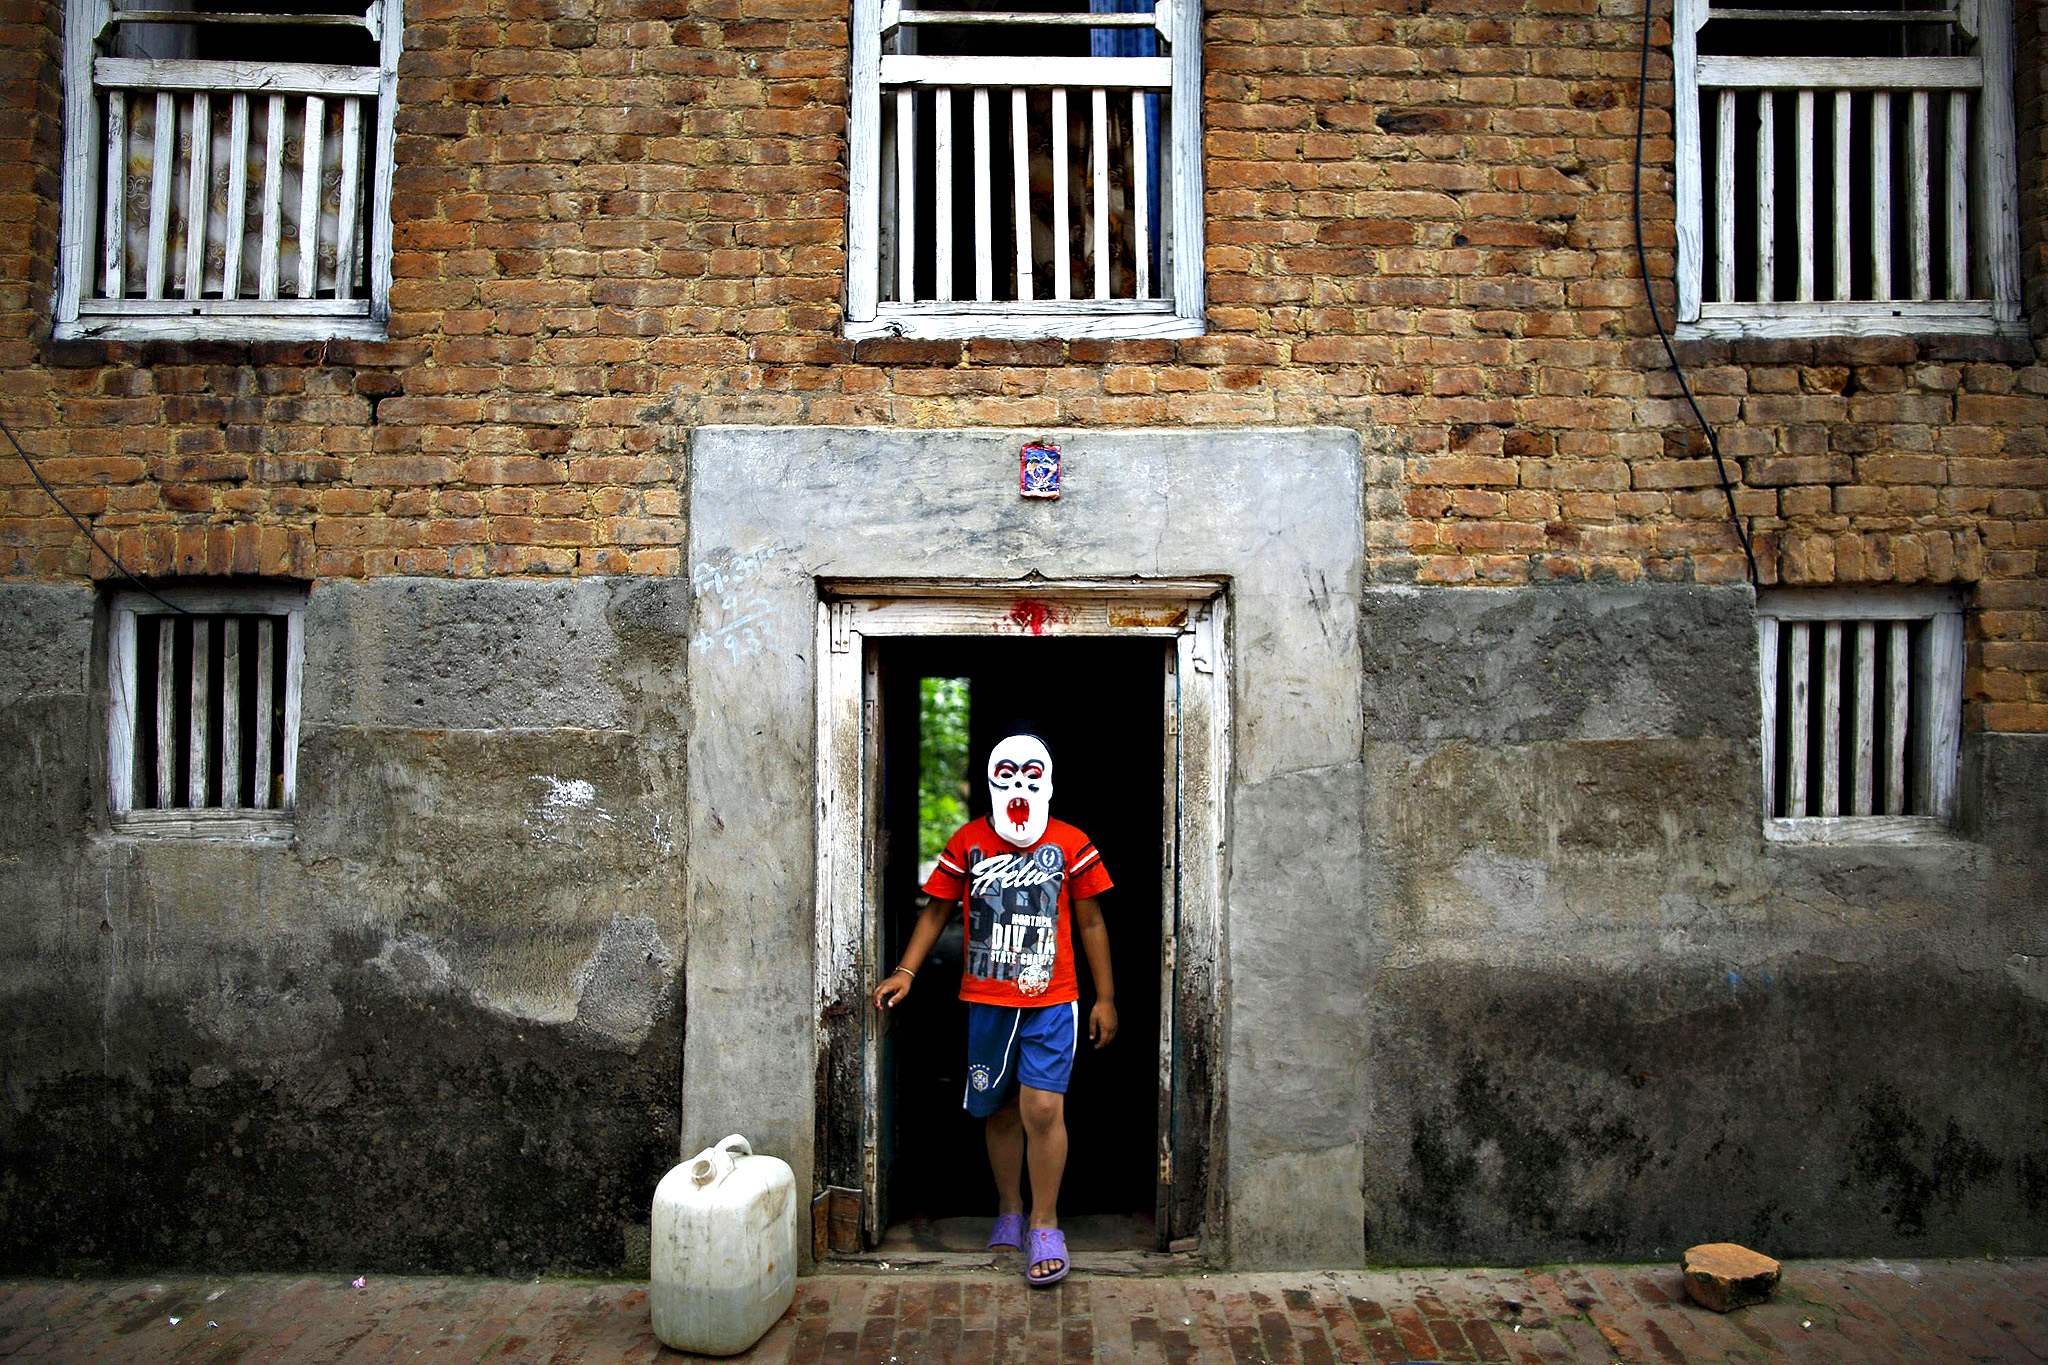 A masked devotee walks out from a house to take part in a parade commemorating the Neku Jatra-Mataya festival, the festival of lights, in Lalitpur August 12, 2014. Devotees celebrate the Buddhist festival which marks the victory of Sakyamuni Buddha over Mara, by praying for the souls of departed family members and holding parades throughout the city.